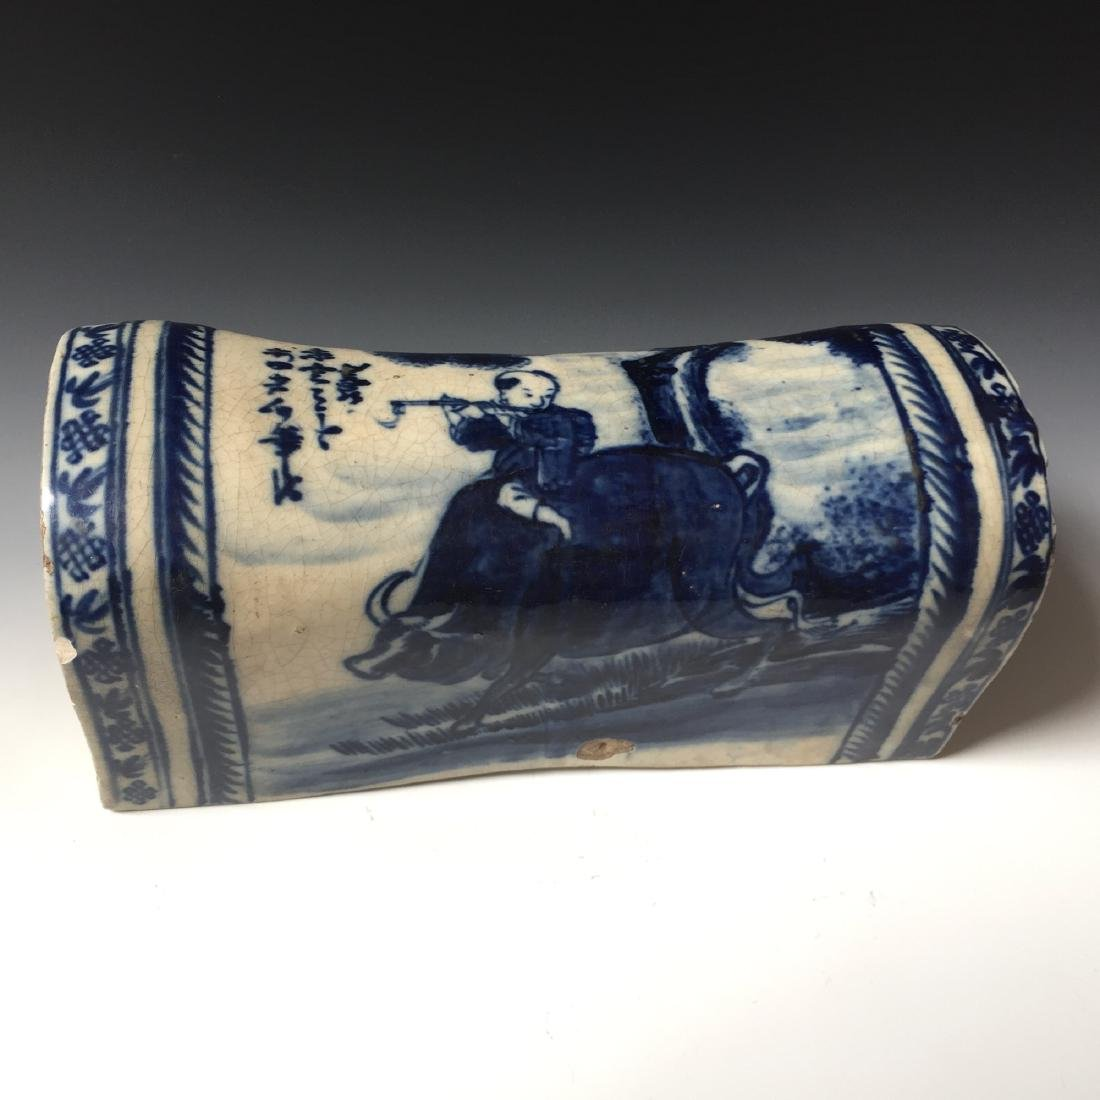 A CHINESE ANTIQUE BLUE AND WHITE PORCELAIN PILLOW,